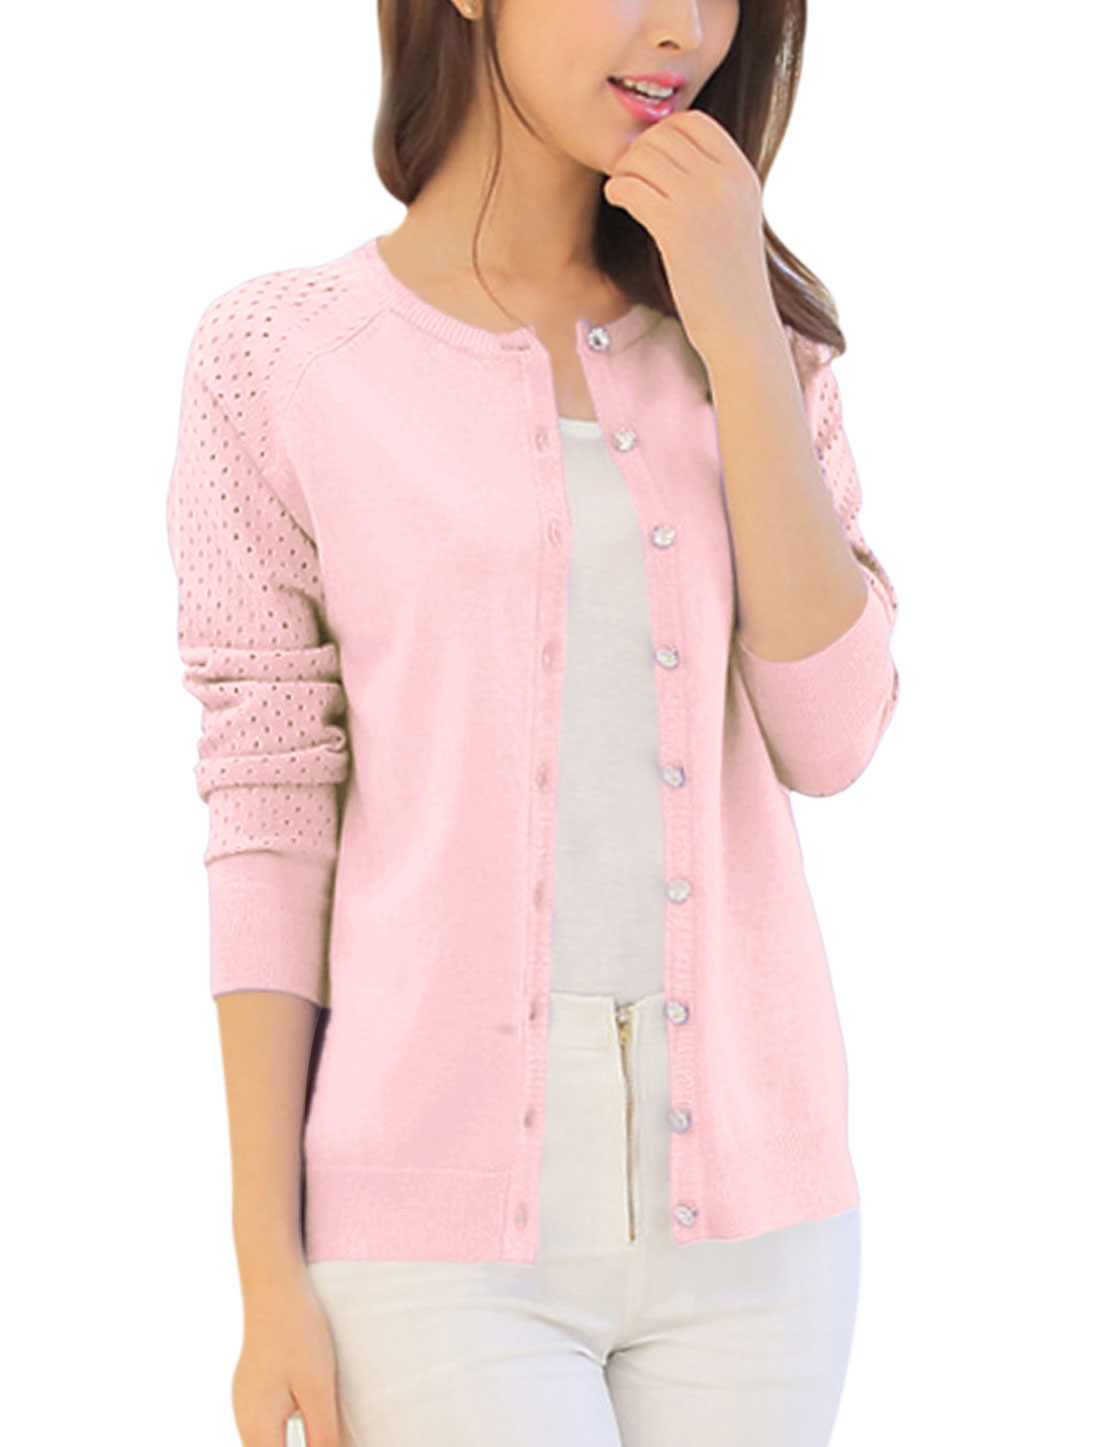 Lady Long Sleeve Single Breasted Hollow Out Leisure Knit Cardigan Pink XS